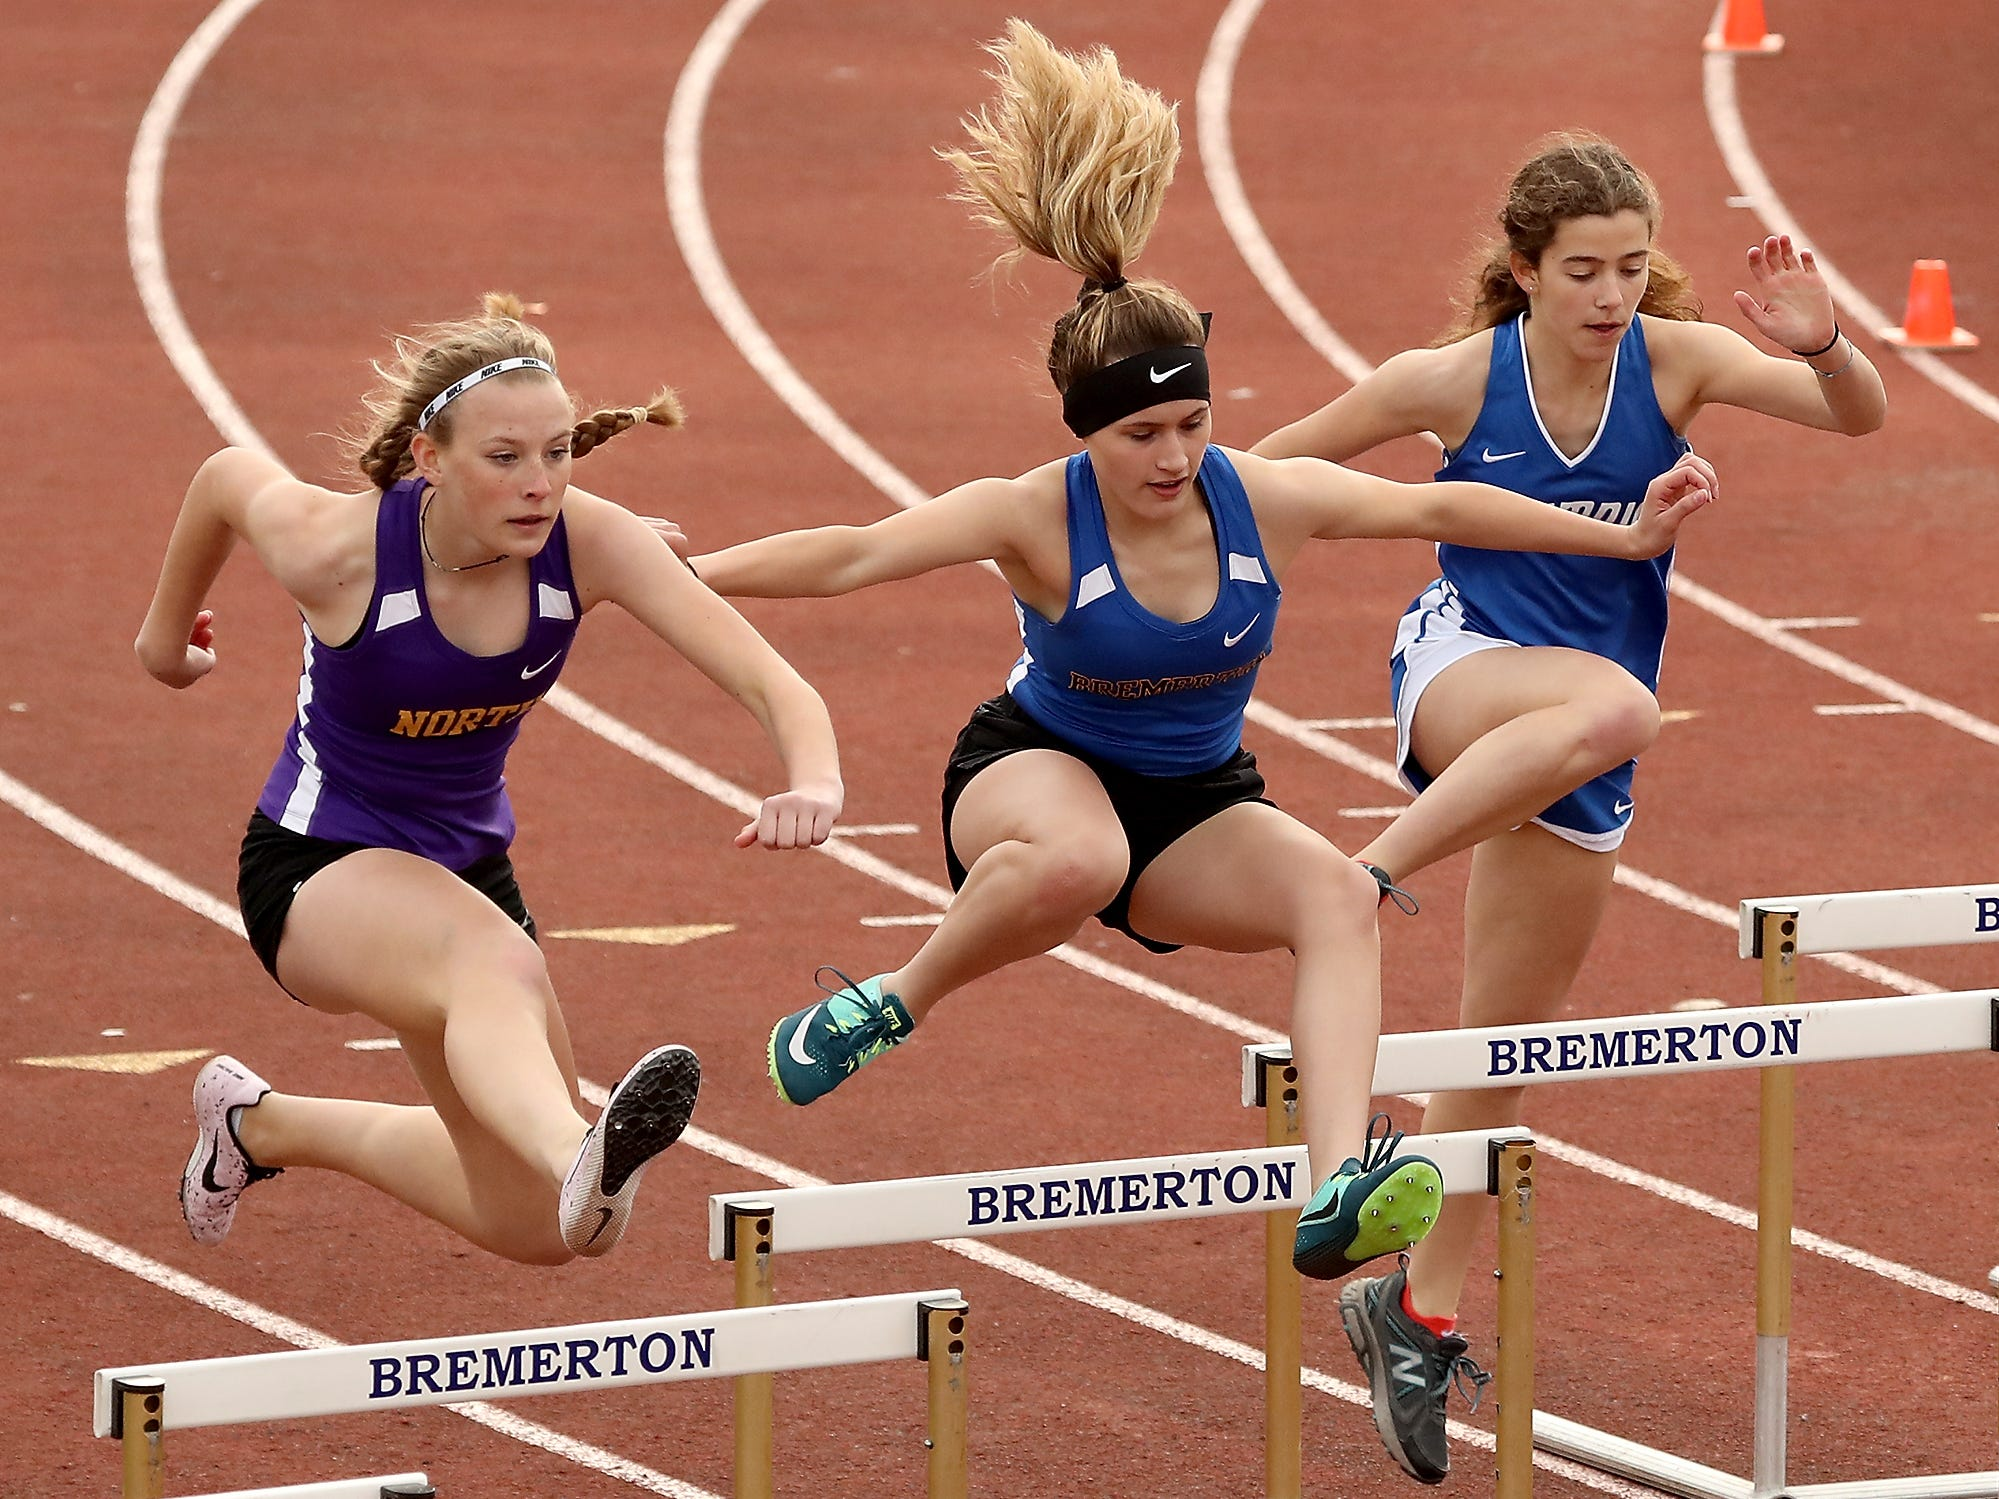 Competitors in the 300 Meter Hurdles (left to right) North Kitsap's Kaiya Ochs, Bremerton's Cecilia Souza and Olympic's Olivia McFall soar over the hurdles during the meet at Bremerton High on Thursday, March 21, 2019.